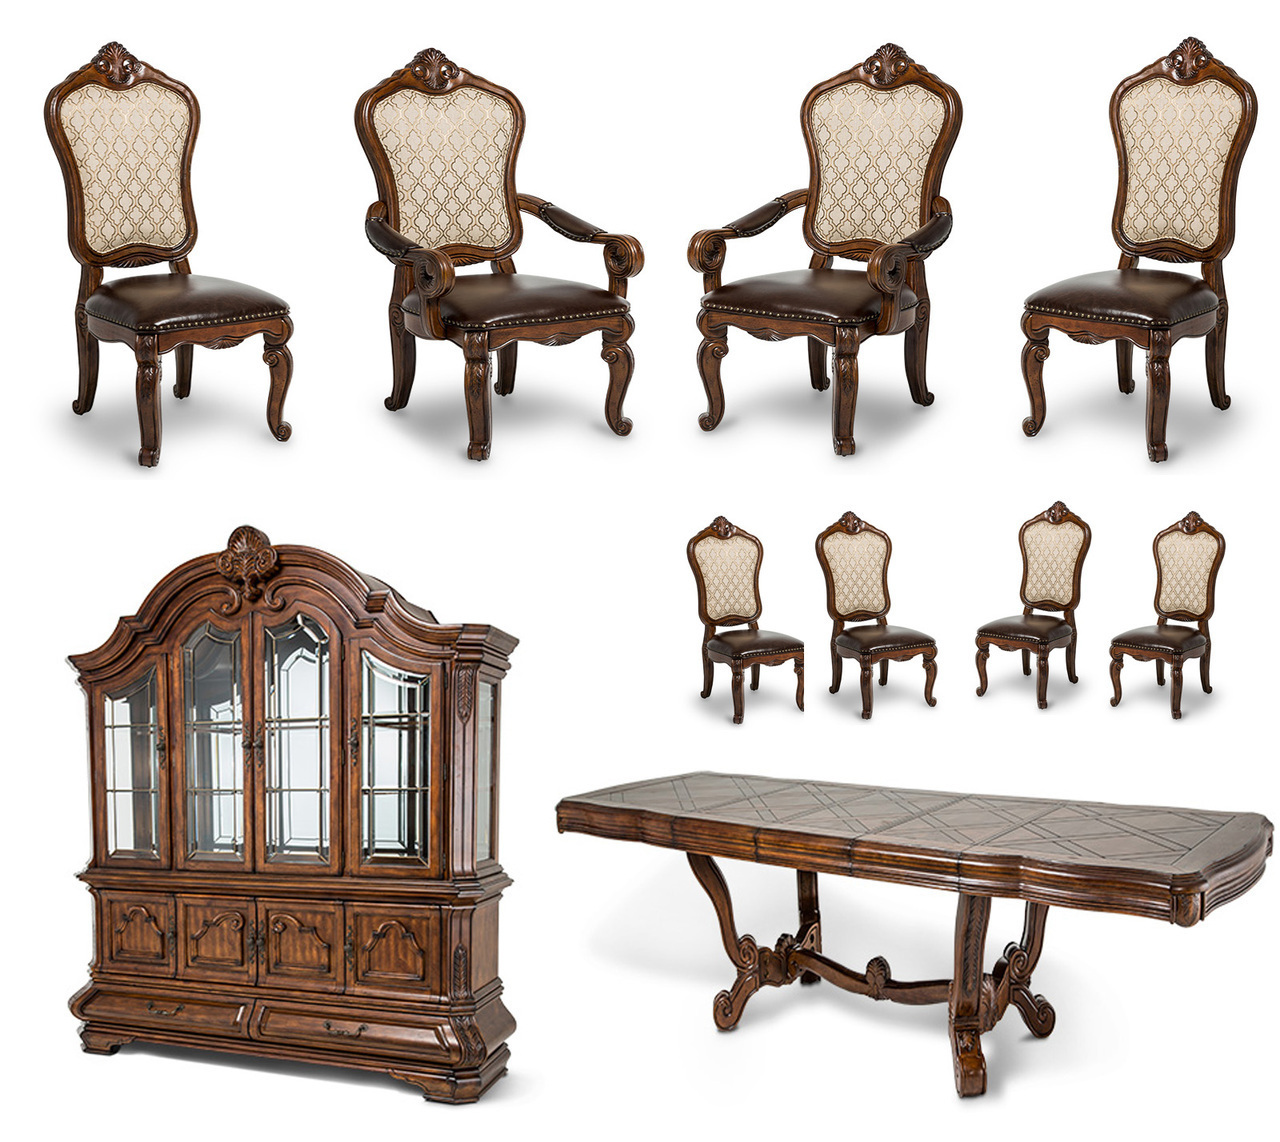 Traditional Dining Room Set: 10-pc Tuscano Melange Traditional Dining Room Set